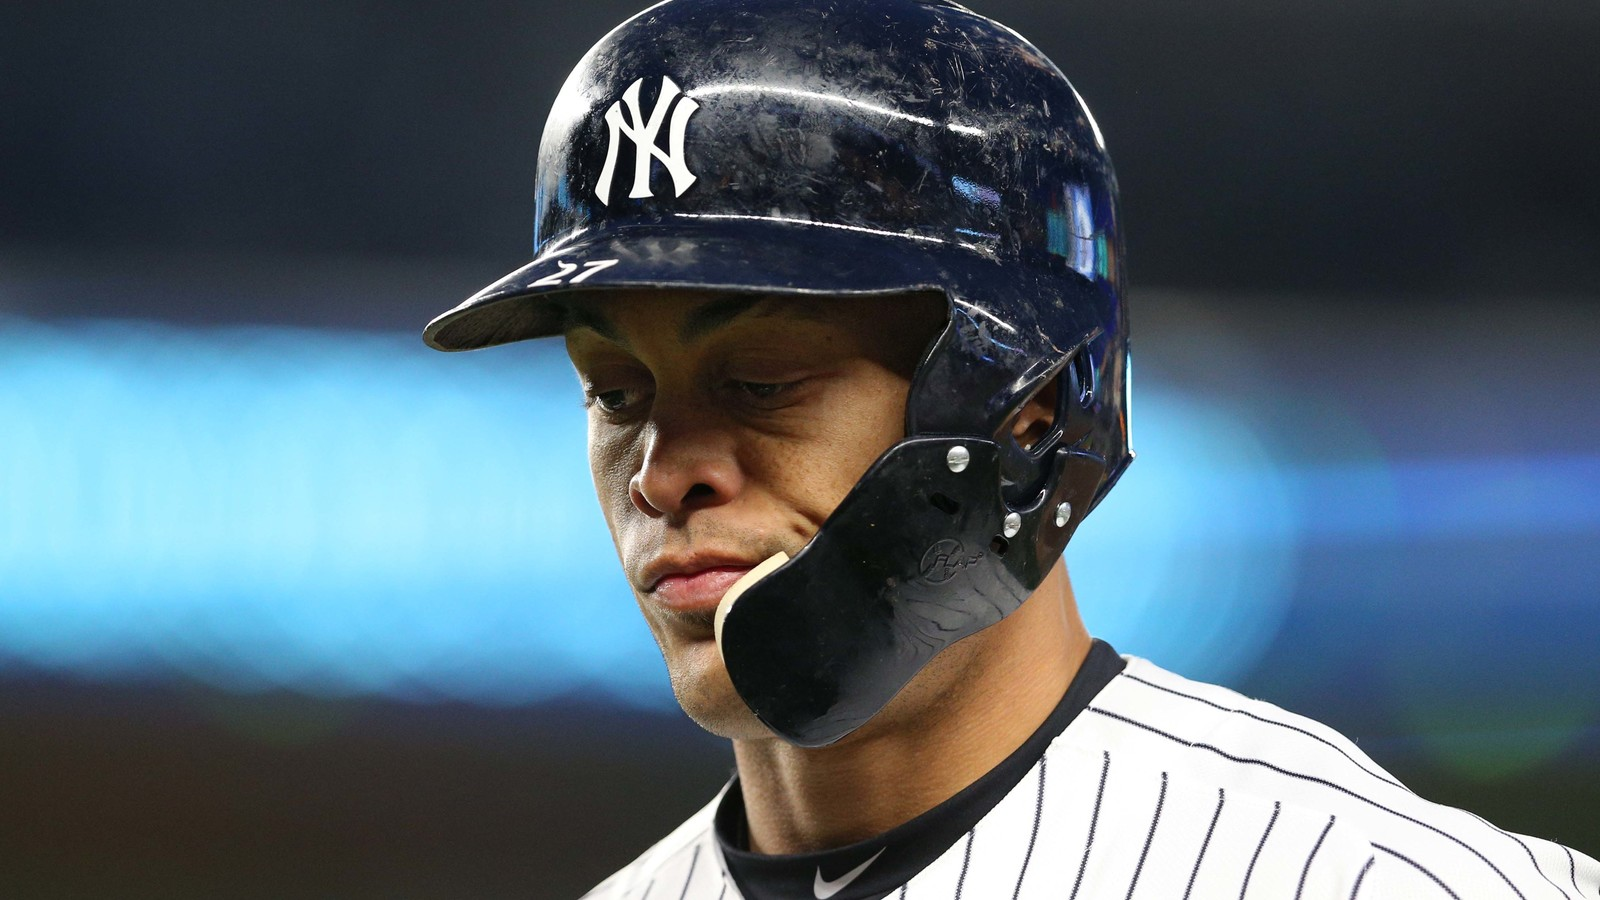 Yankees fans continue to relentlessly boo Giancarlo Stanton